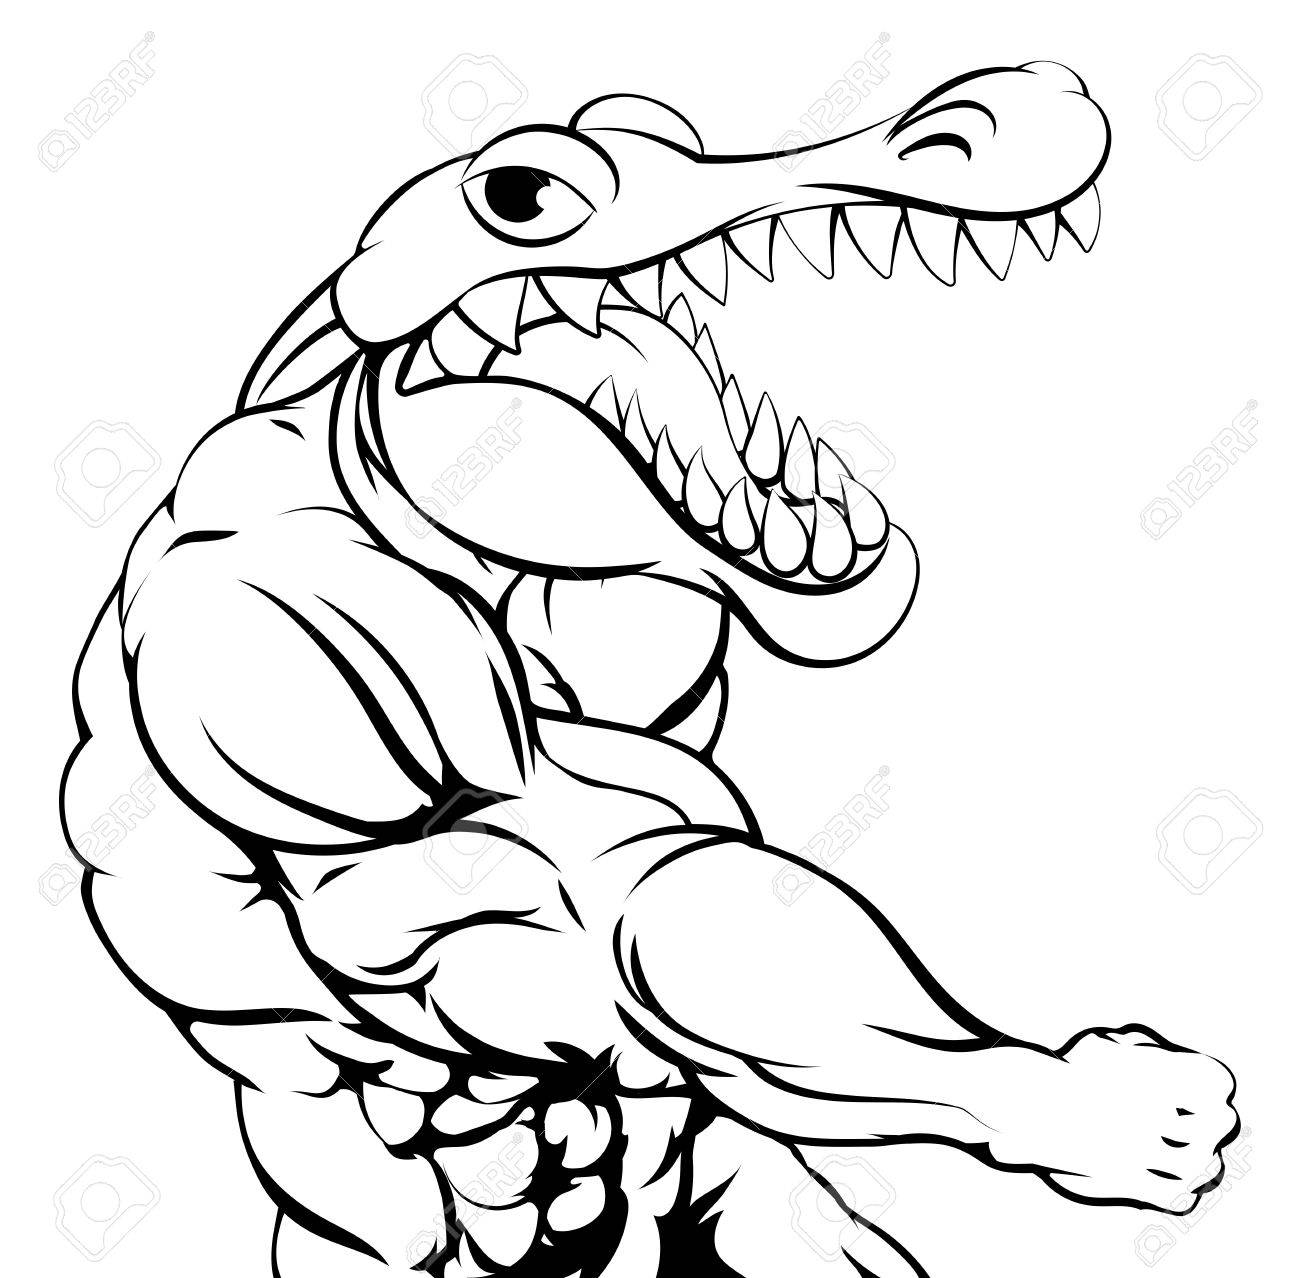 1300x1278 Alligator Or Crocodile Mascot Punching At The Viewer With Fist